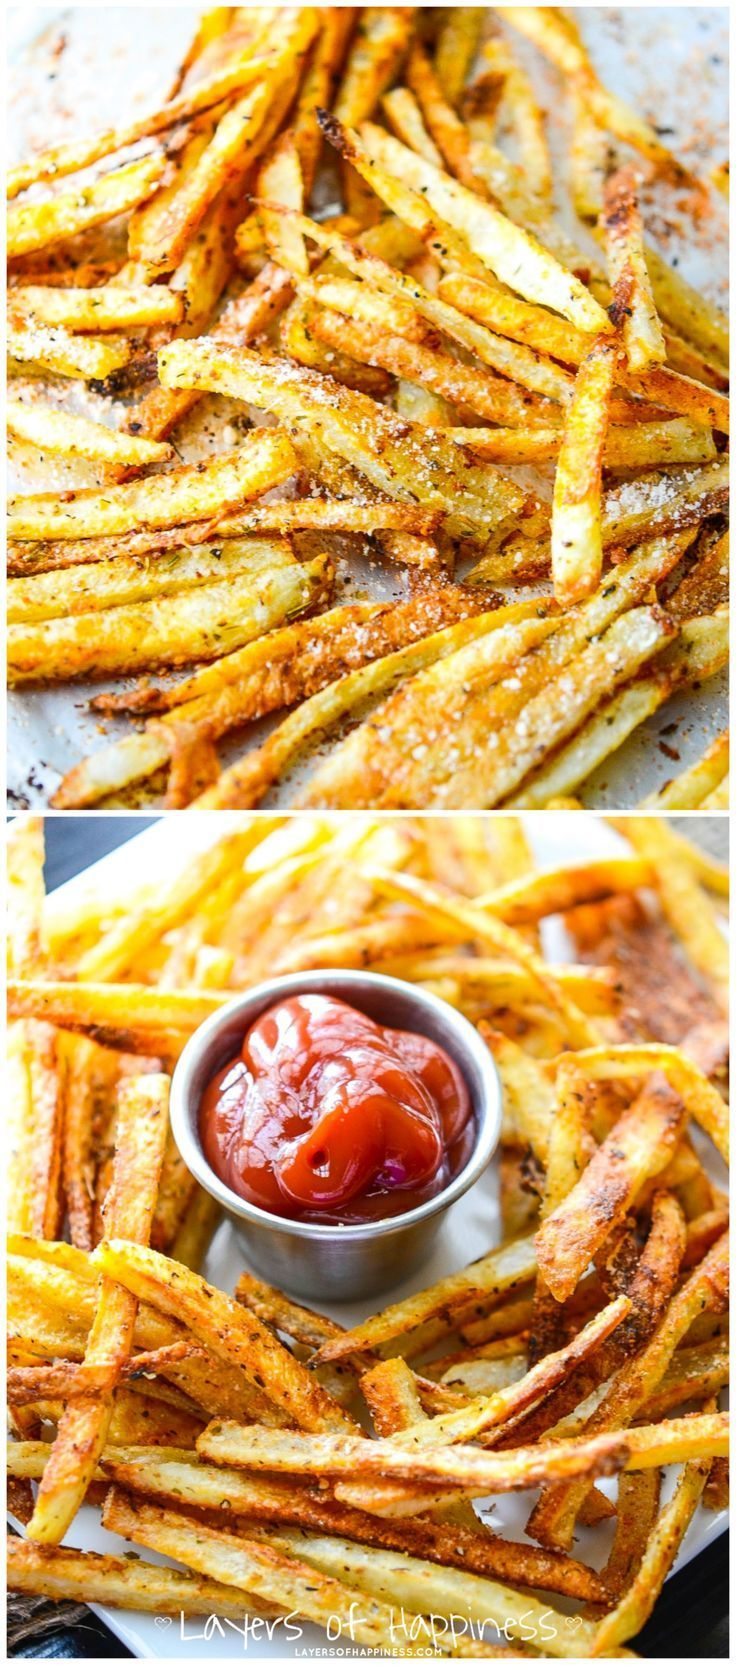 Baked French Fries - Used salt, garlic powder and pepper. Yummy. Try with truffle oil or truffle salt.